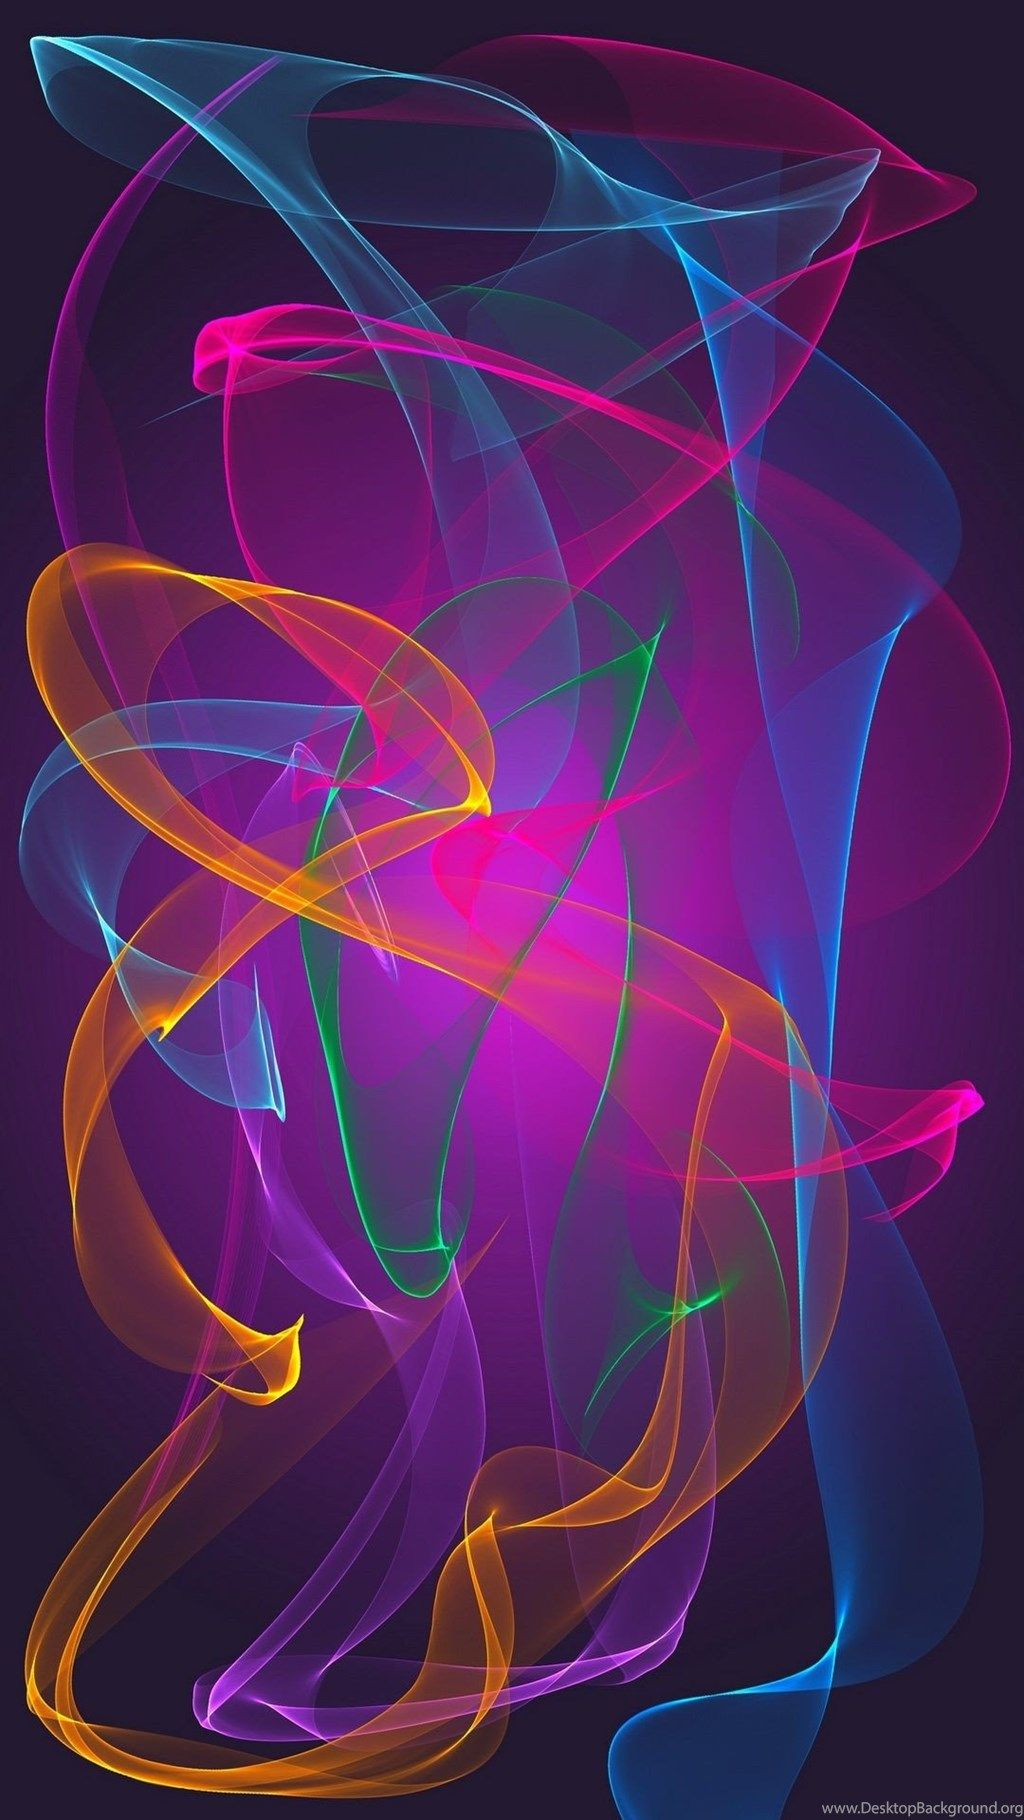 Download Abstract Neon Colors Iphone 6 Plus Wallpapers Abstract Colors Desktop Background De Abstract Iphone Wallpaper Iphone 6 Plus Wallpaper Neon Colors